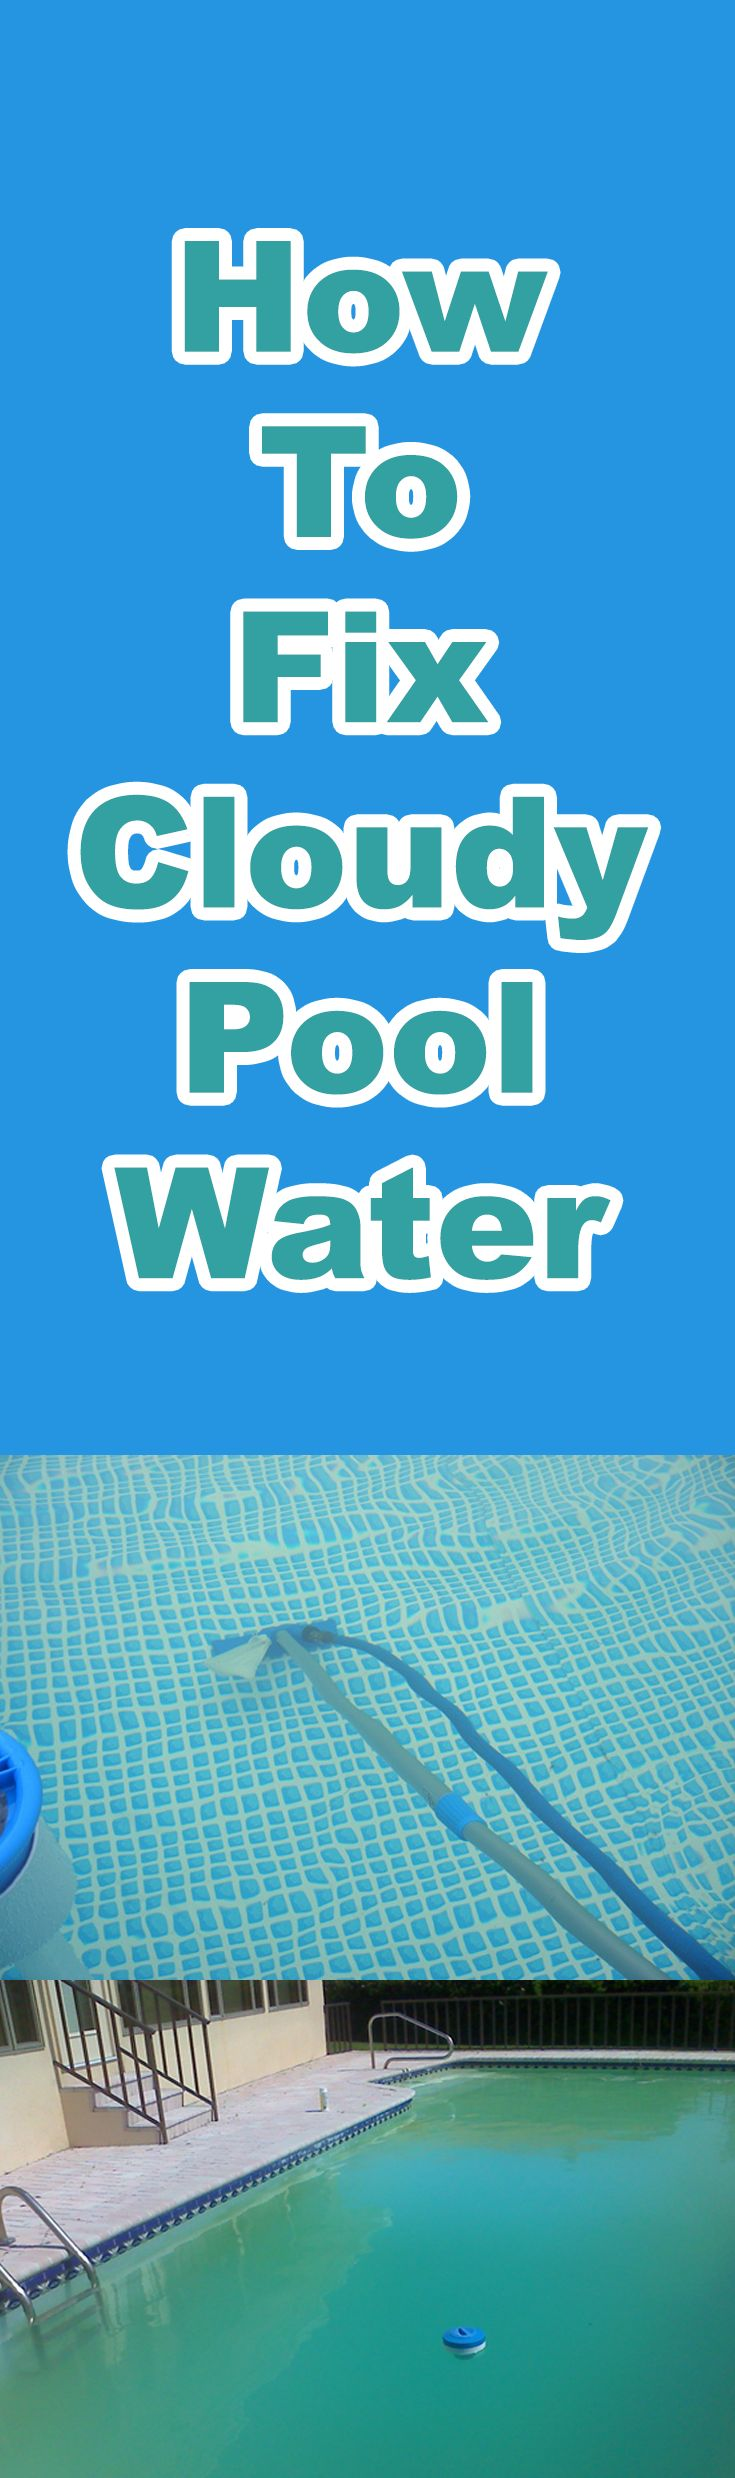 http://www.medallionenergy.com/blog/fix-cloudy-pool-water/